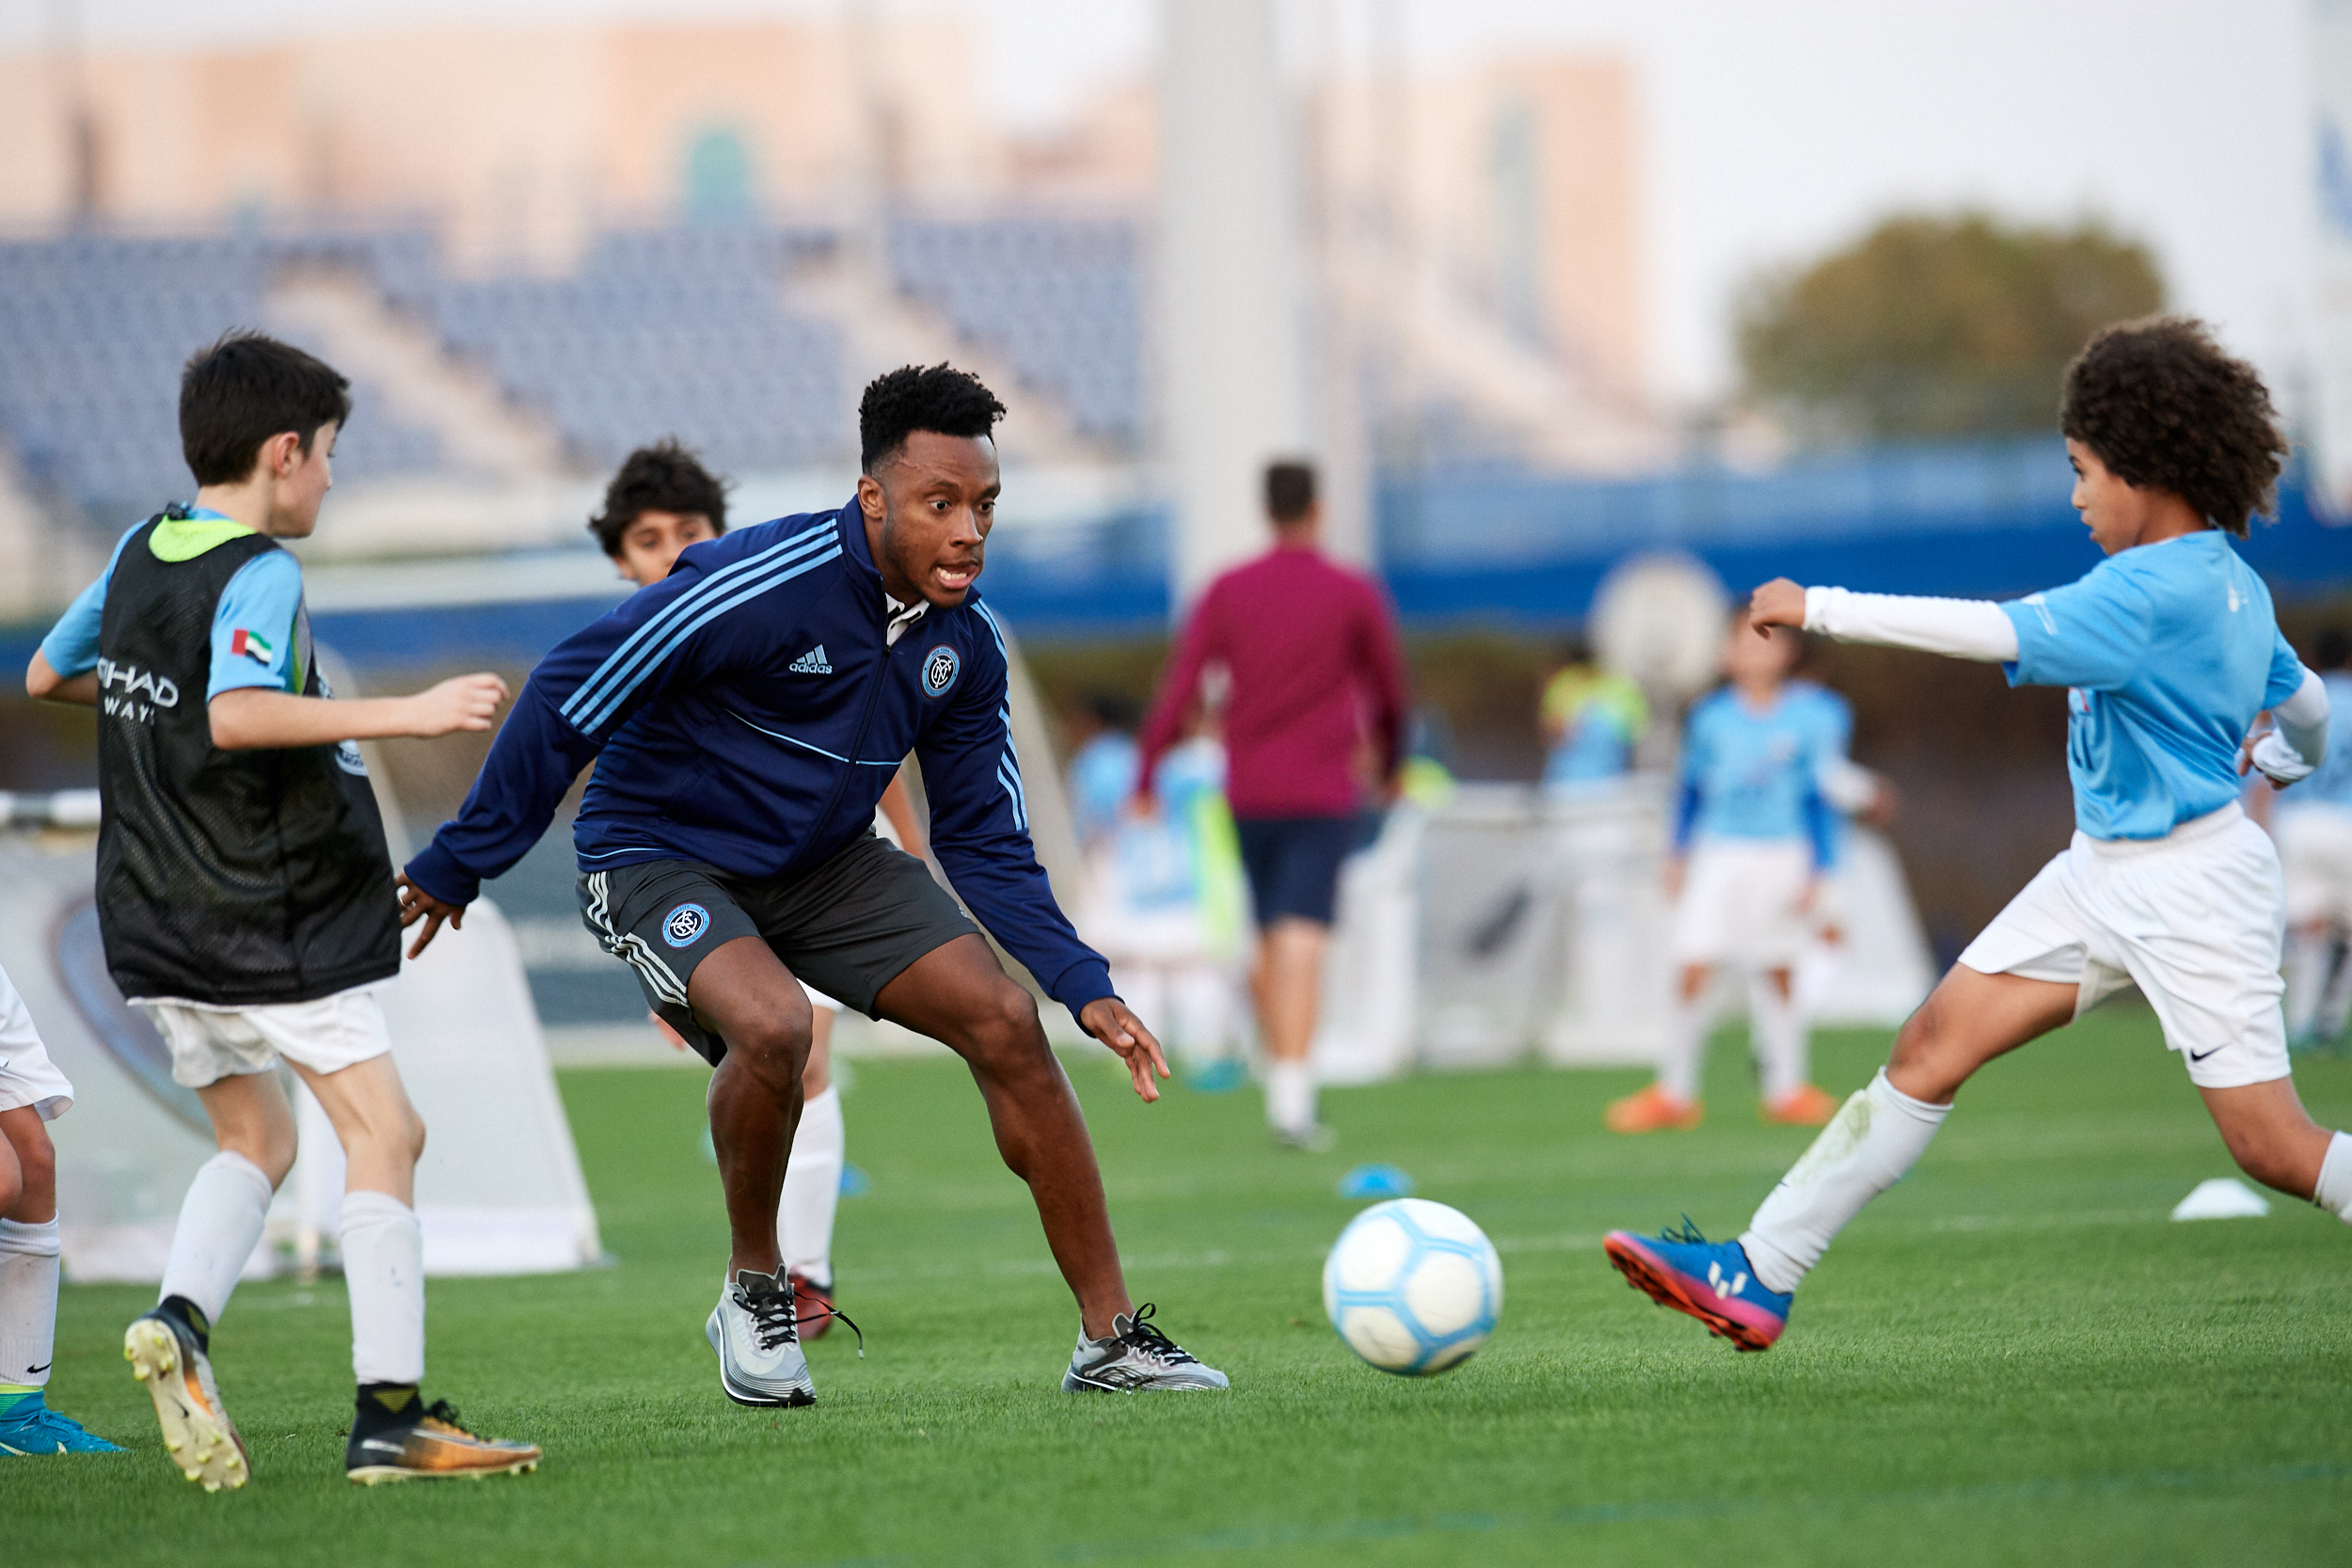 etihad airways fly in young new york city fc stars to coach youth players in abu dhabi1